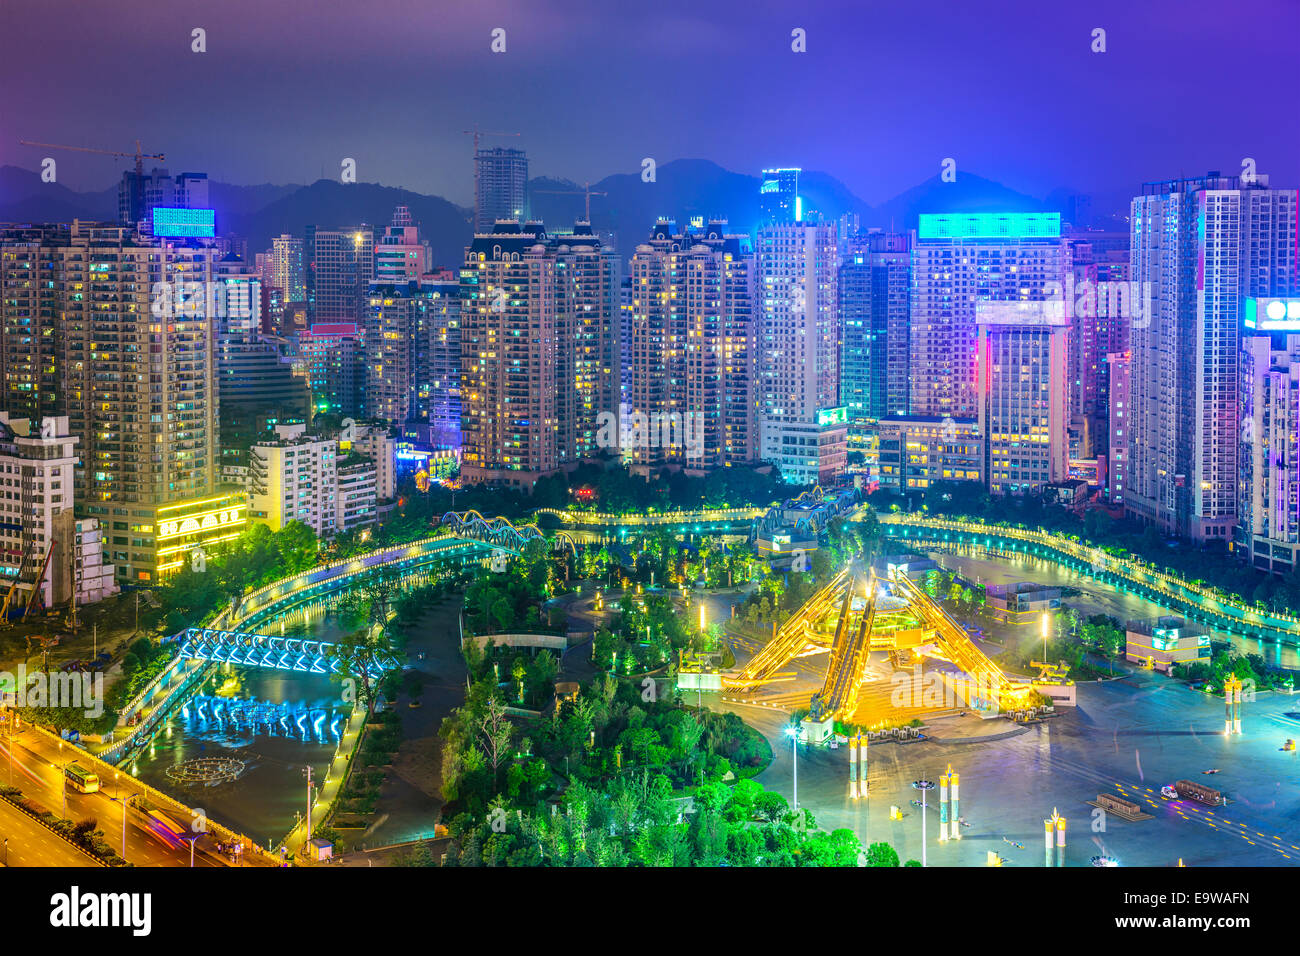 Guiyang, China cityscape over People's Square at night. - Stock Image